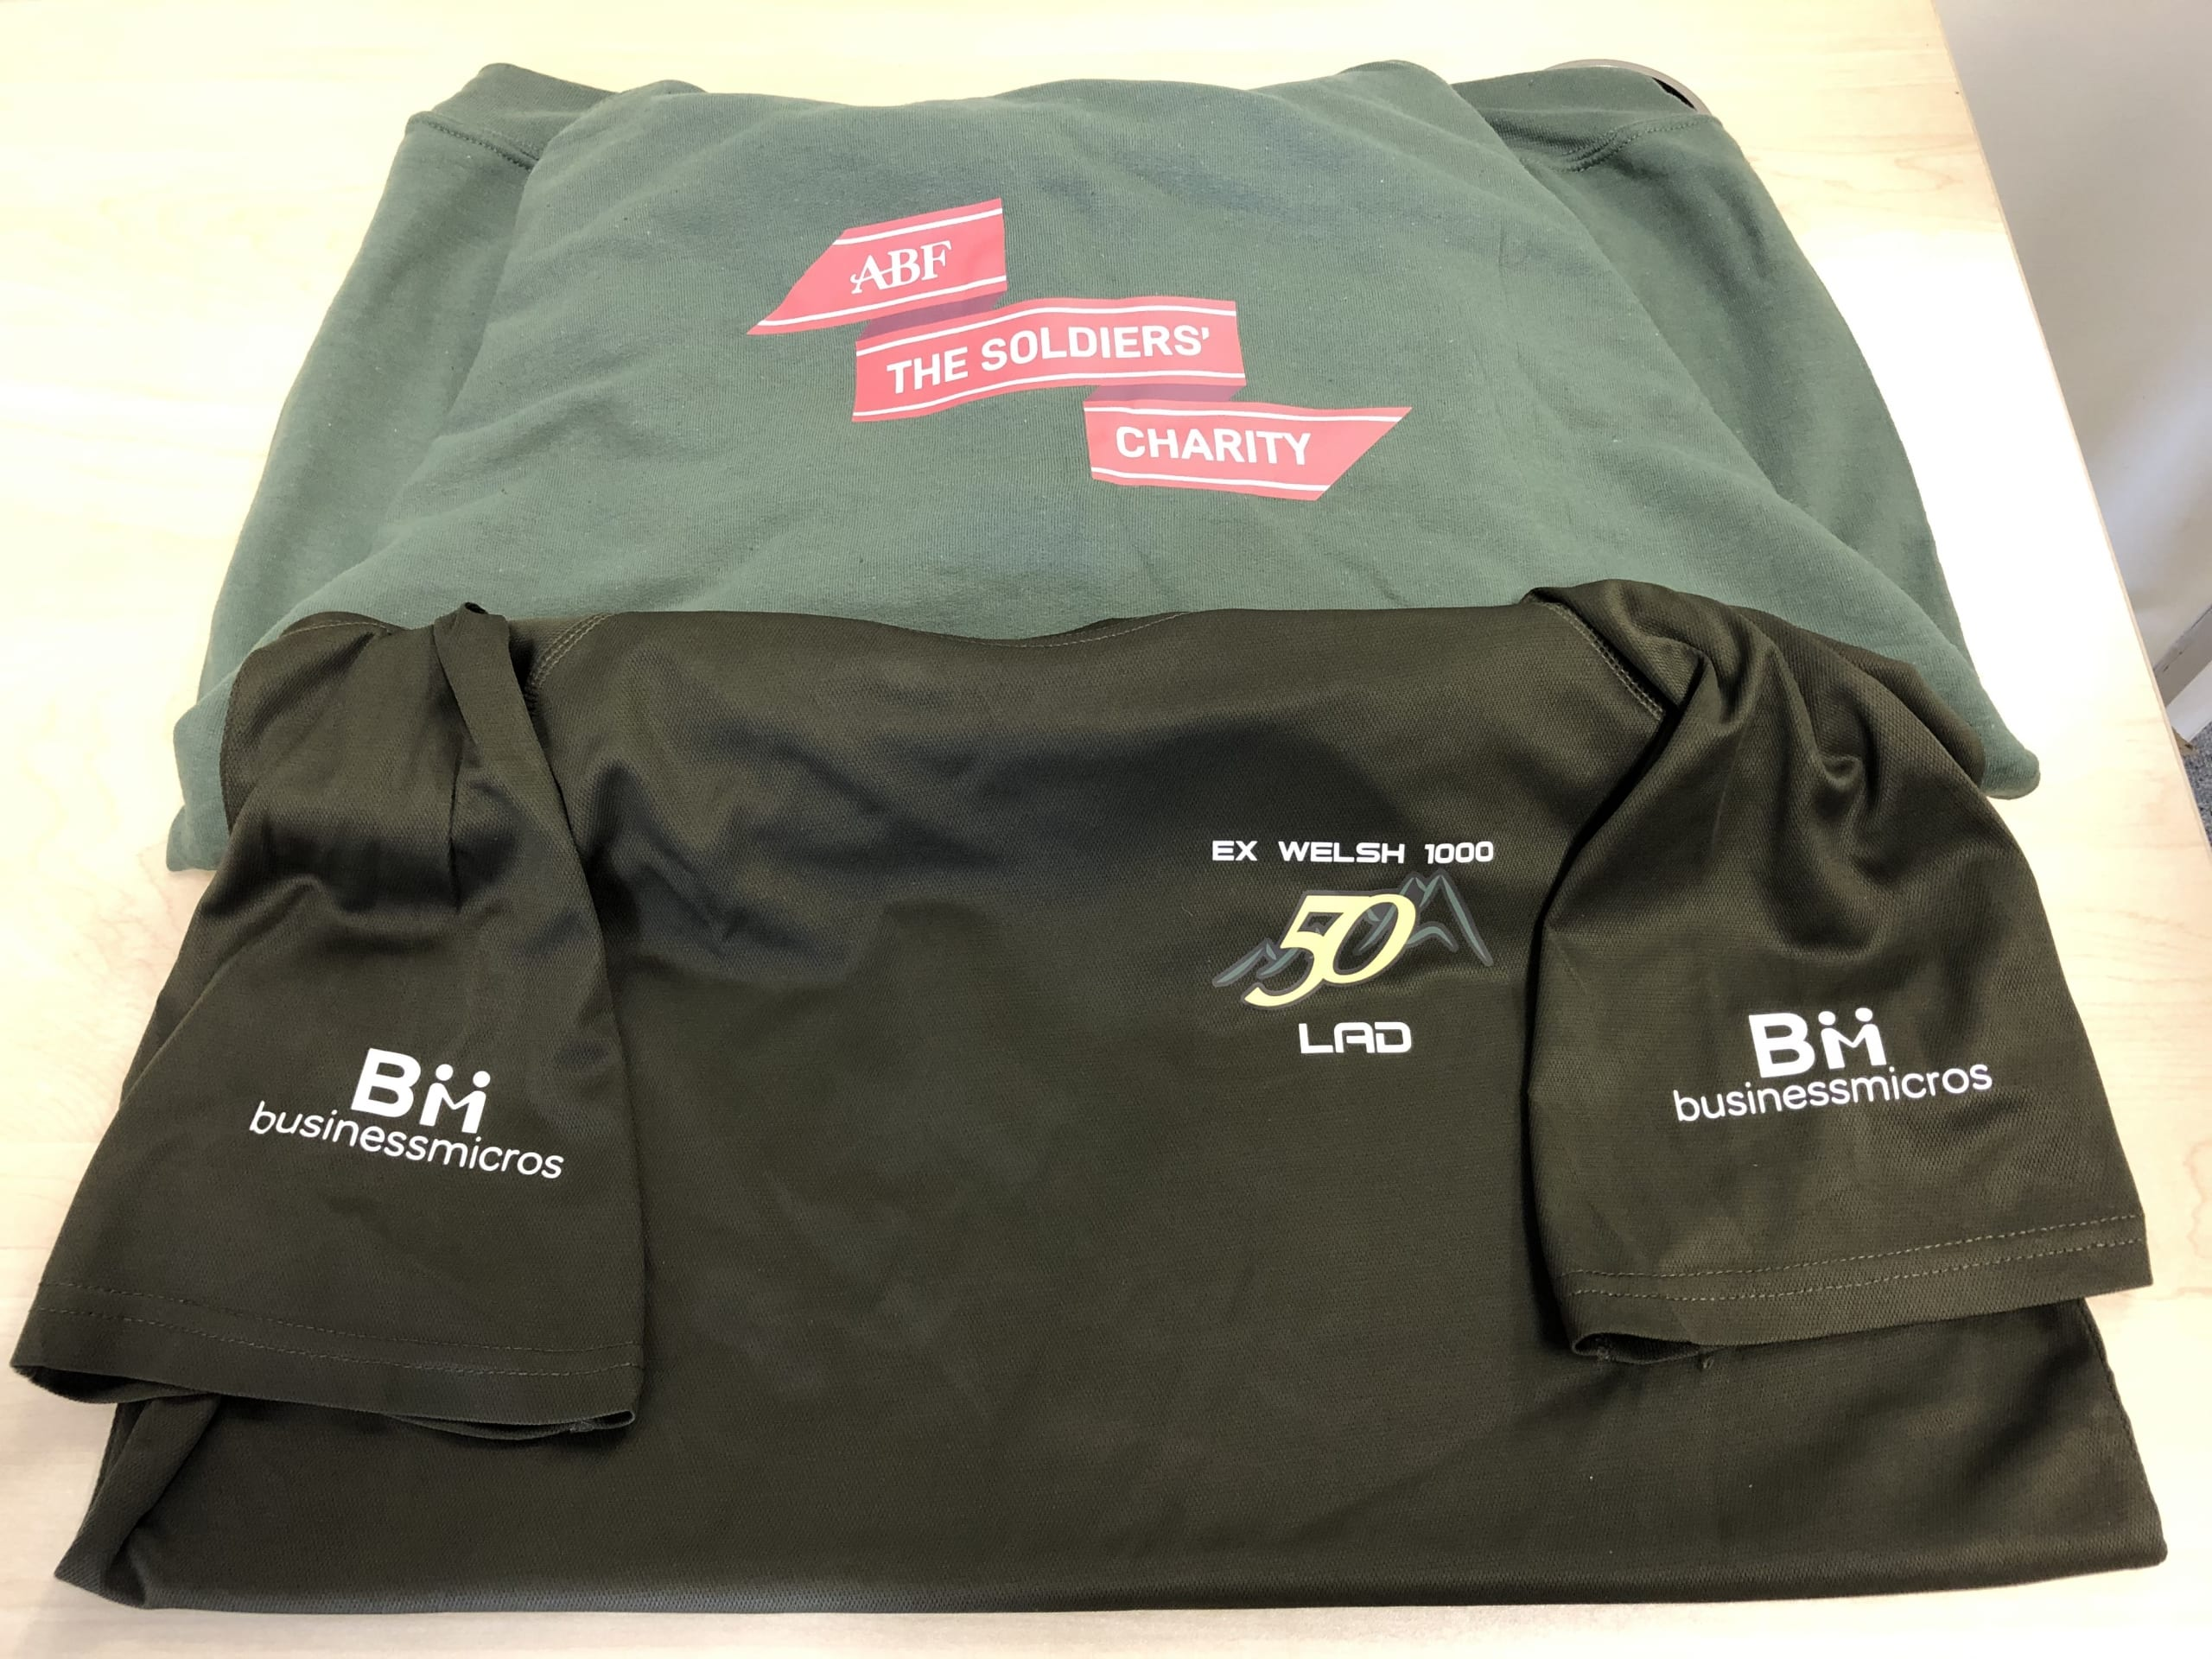 Business Micros | Clothing for Welsh 1000 scaled